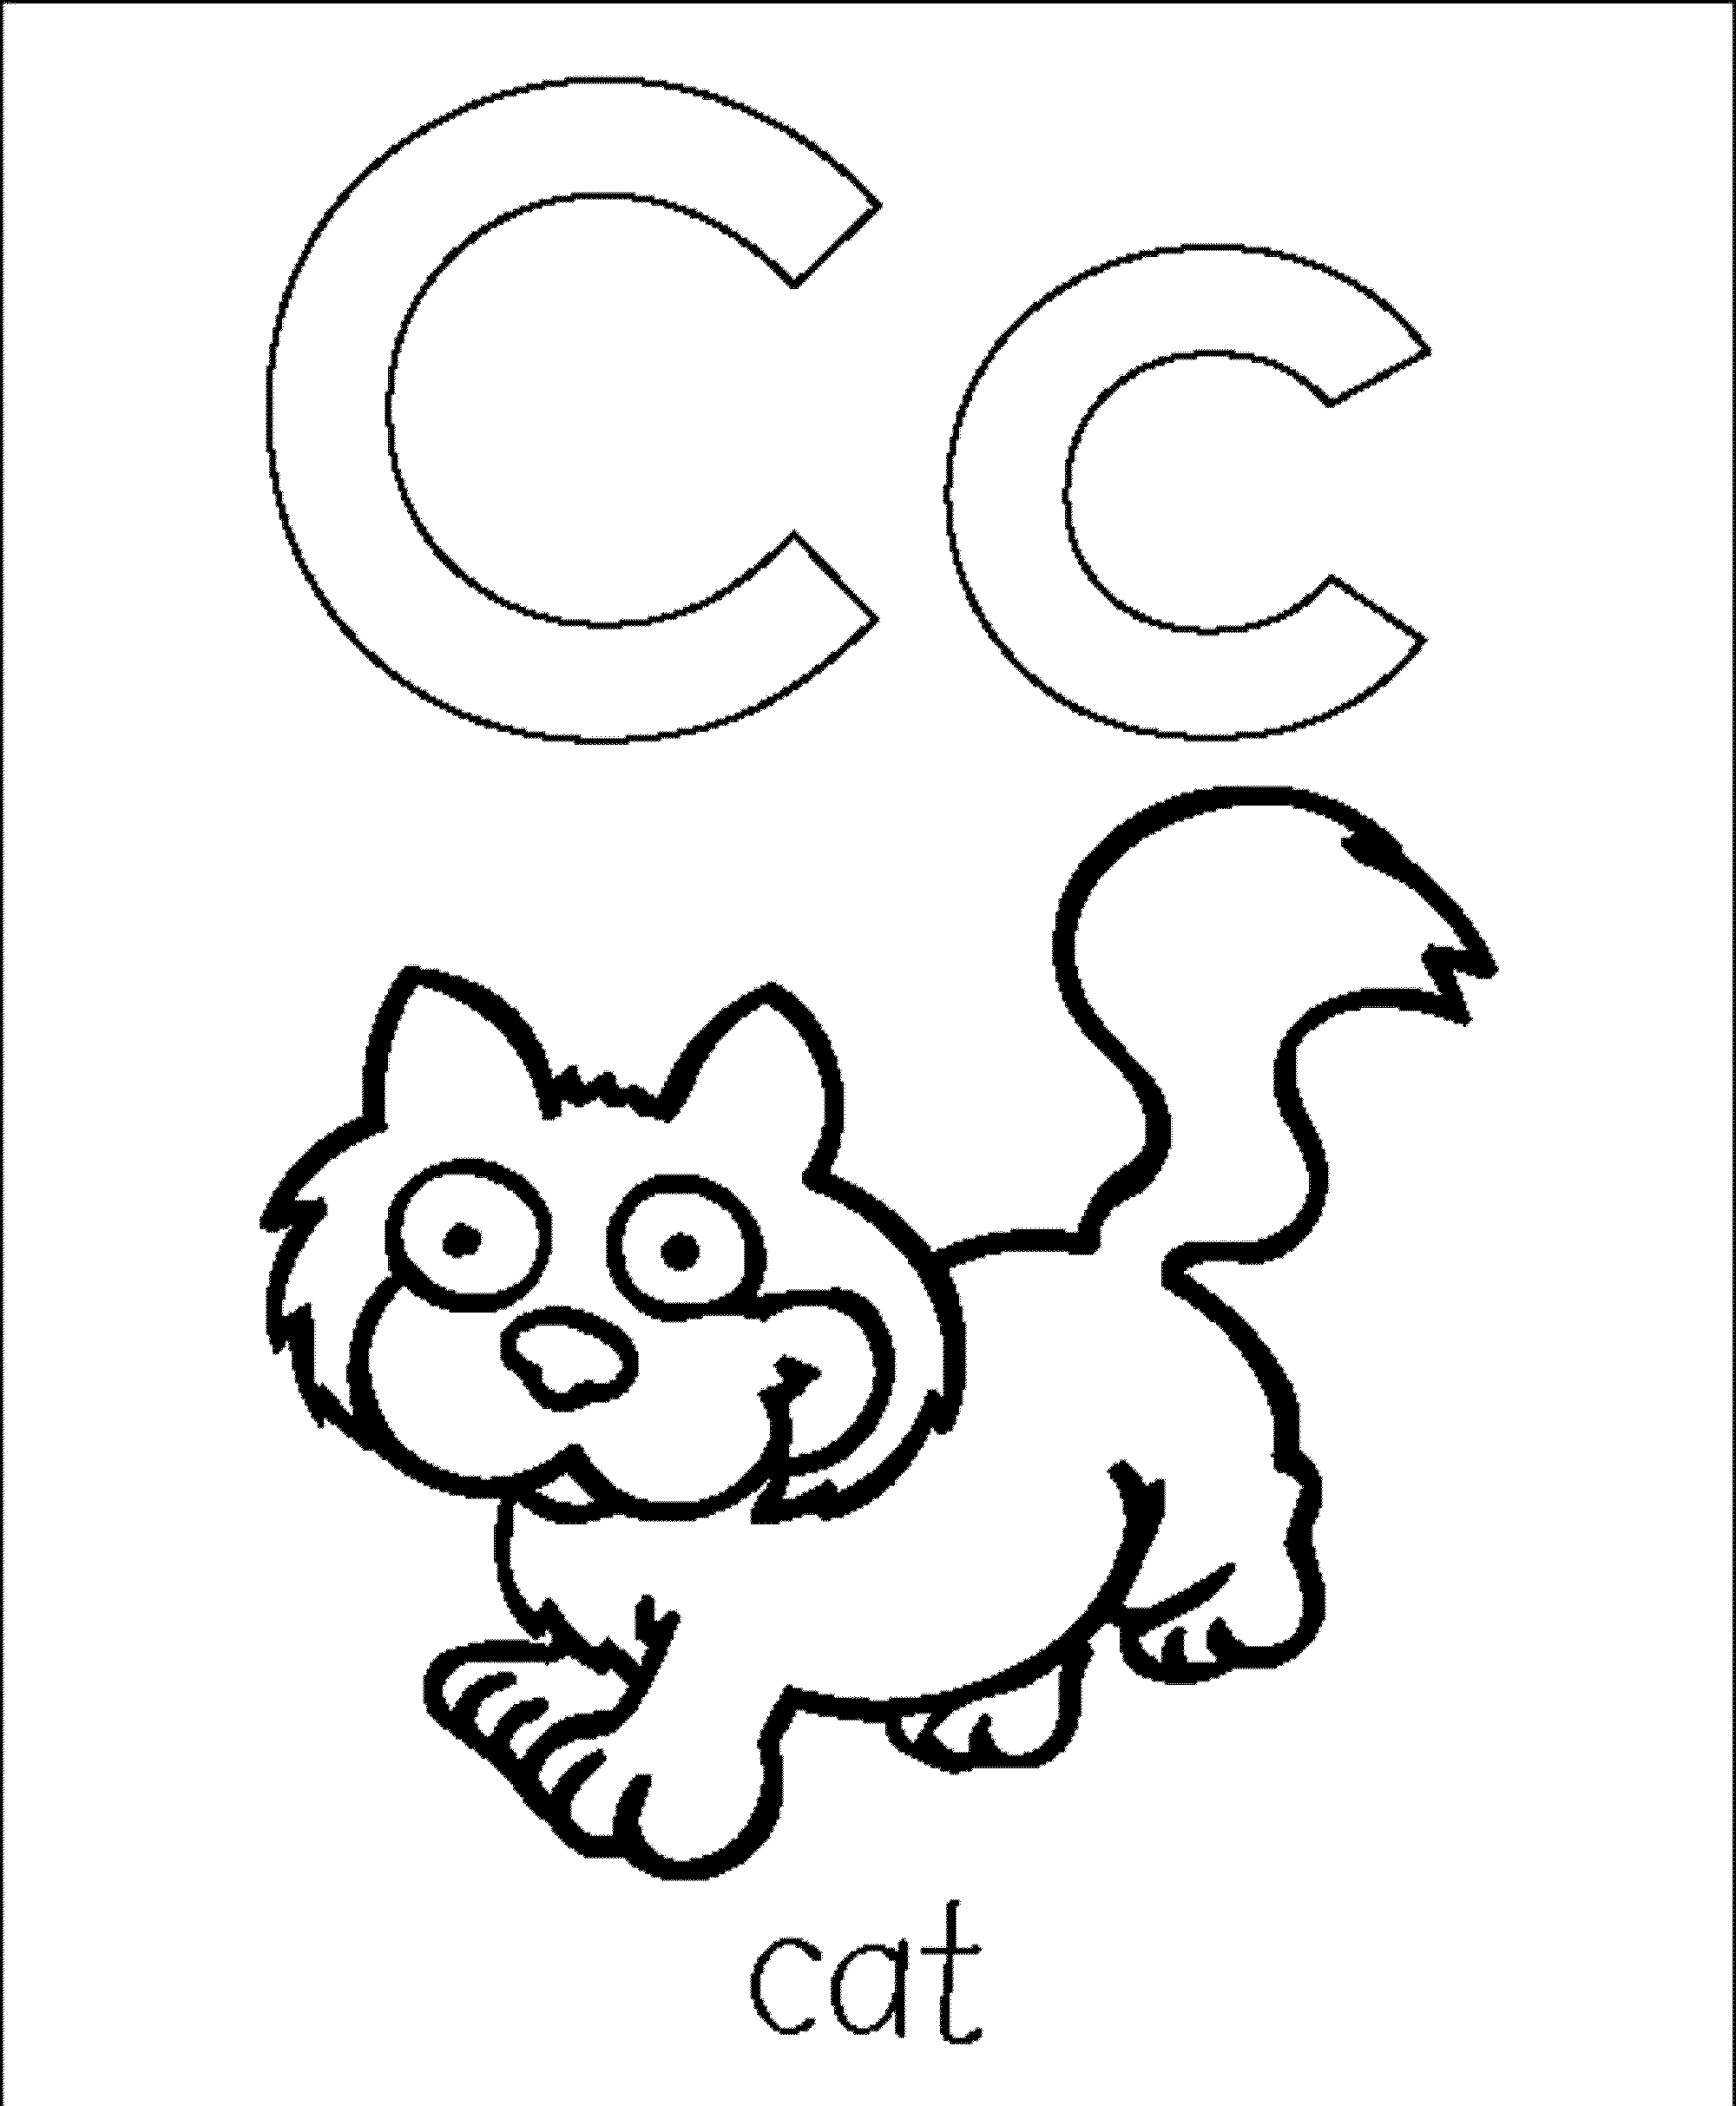 Coloring Pages The Letter C Coloring Pages free letter c coloring pages az abc blocks printable kids colouring pages